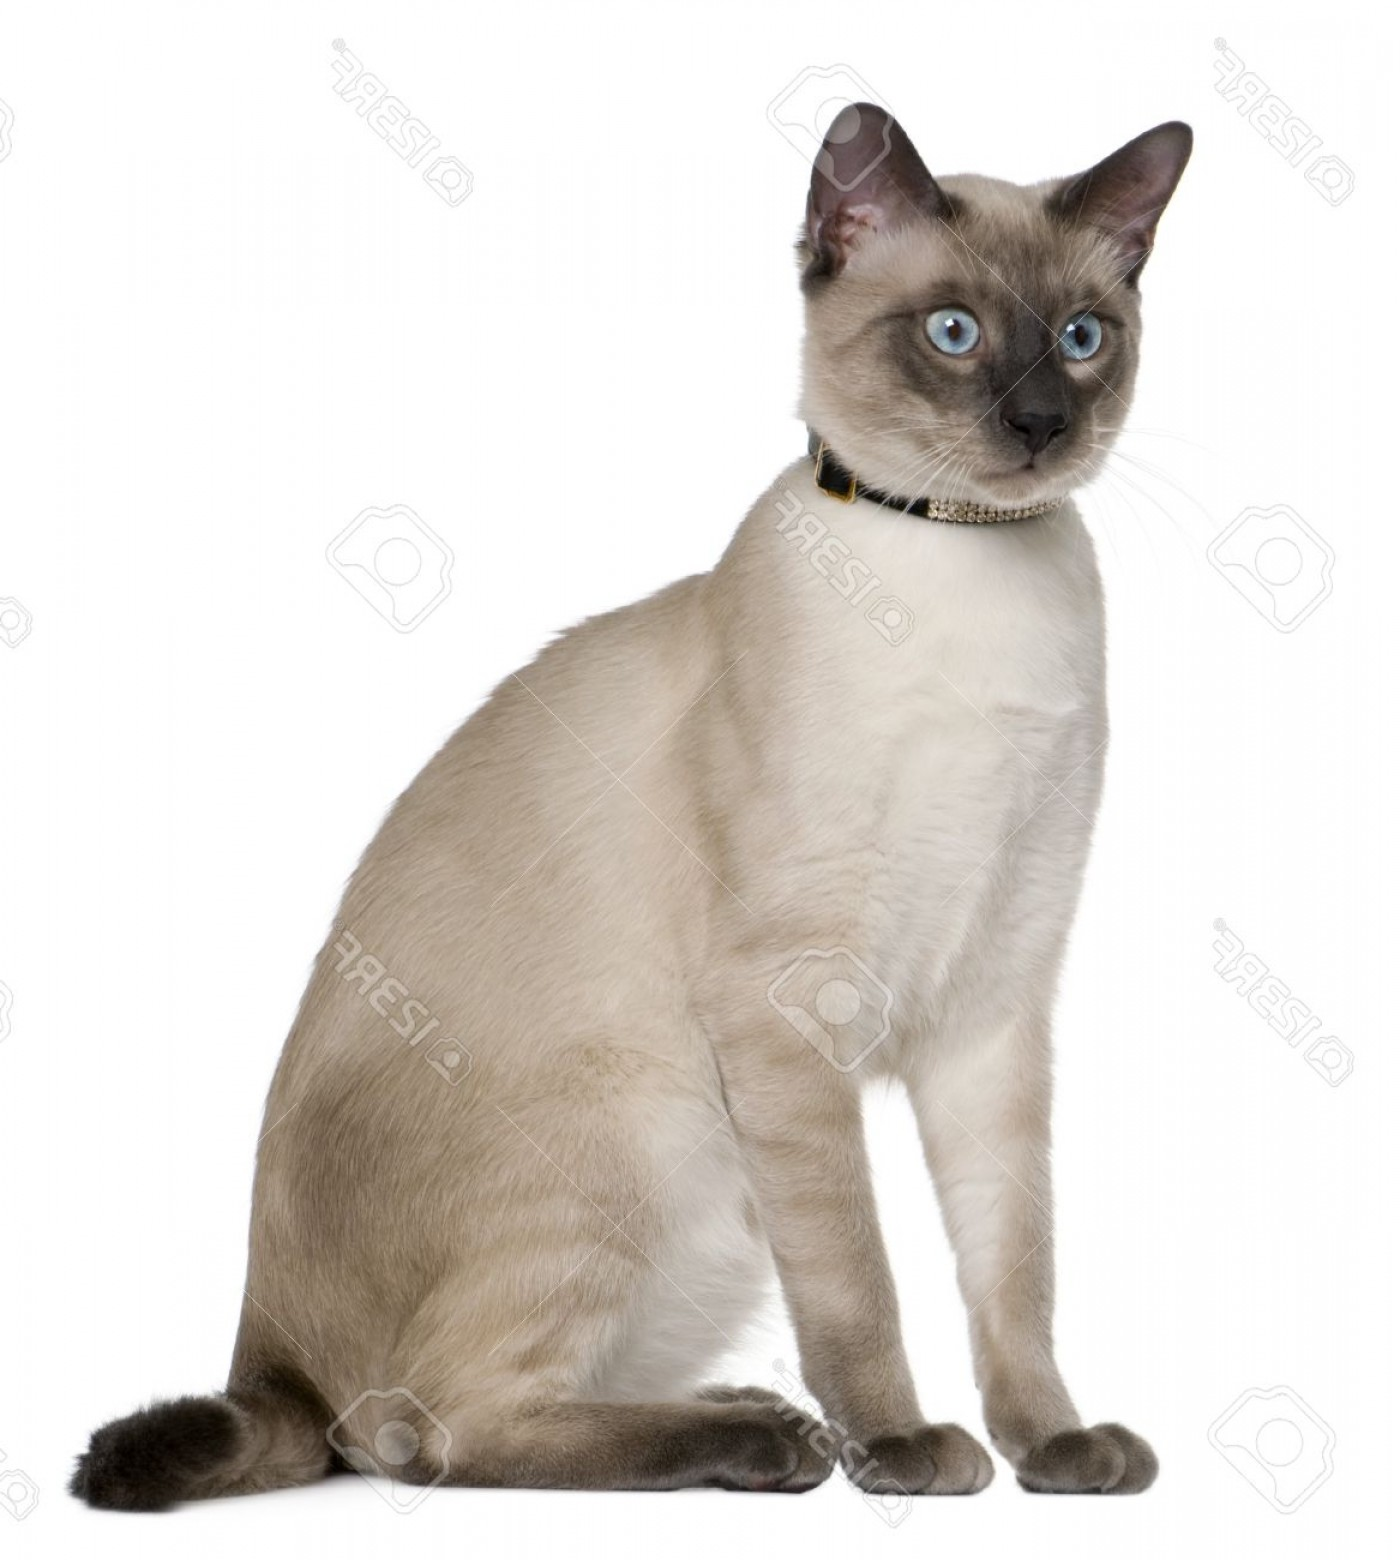 Siamese Cat Vector Transparent Background: Photosiamese Cat Months Old Sitting In Front Of White Background